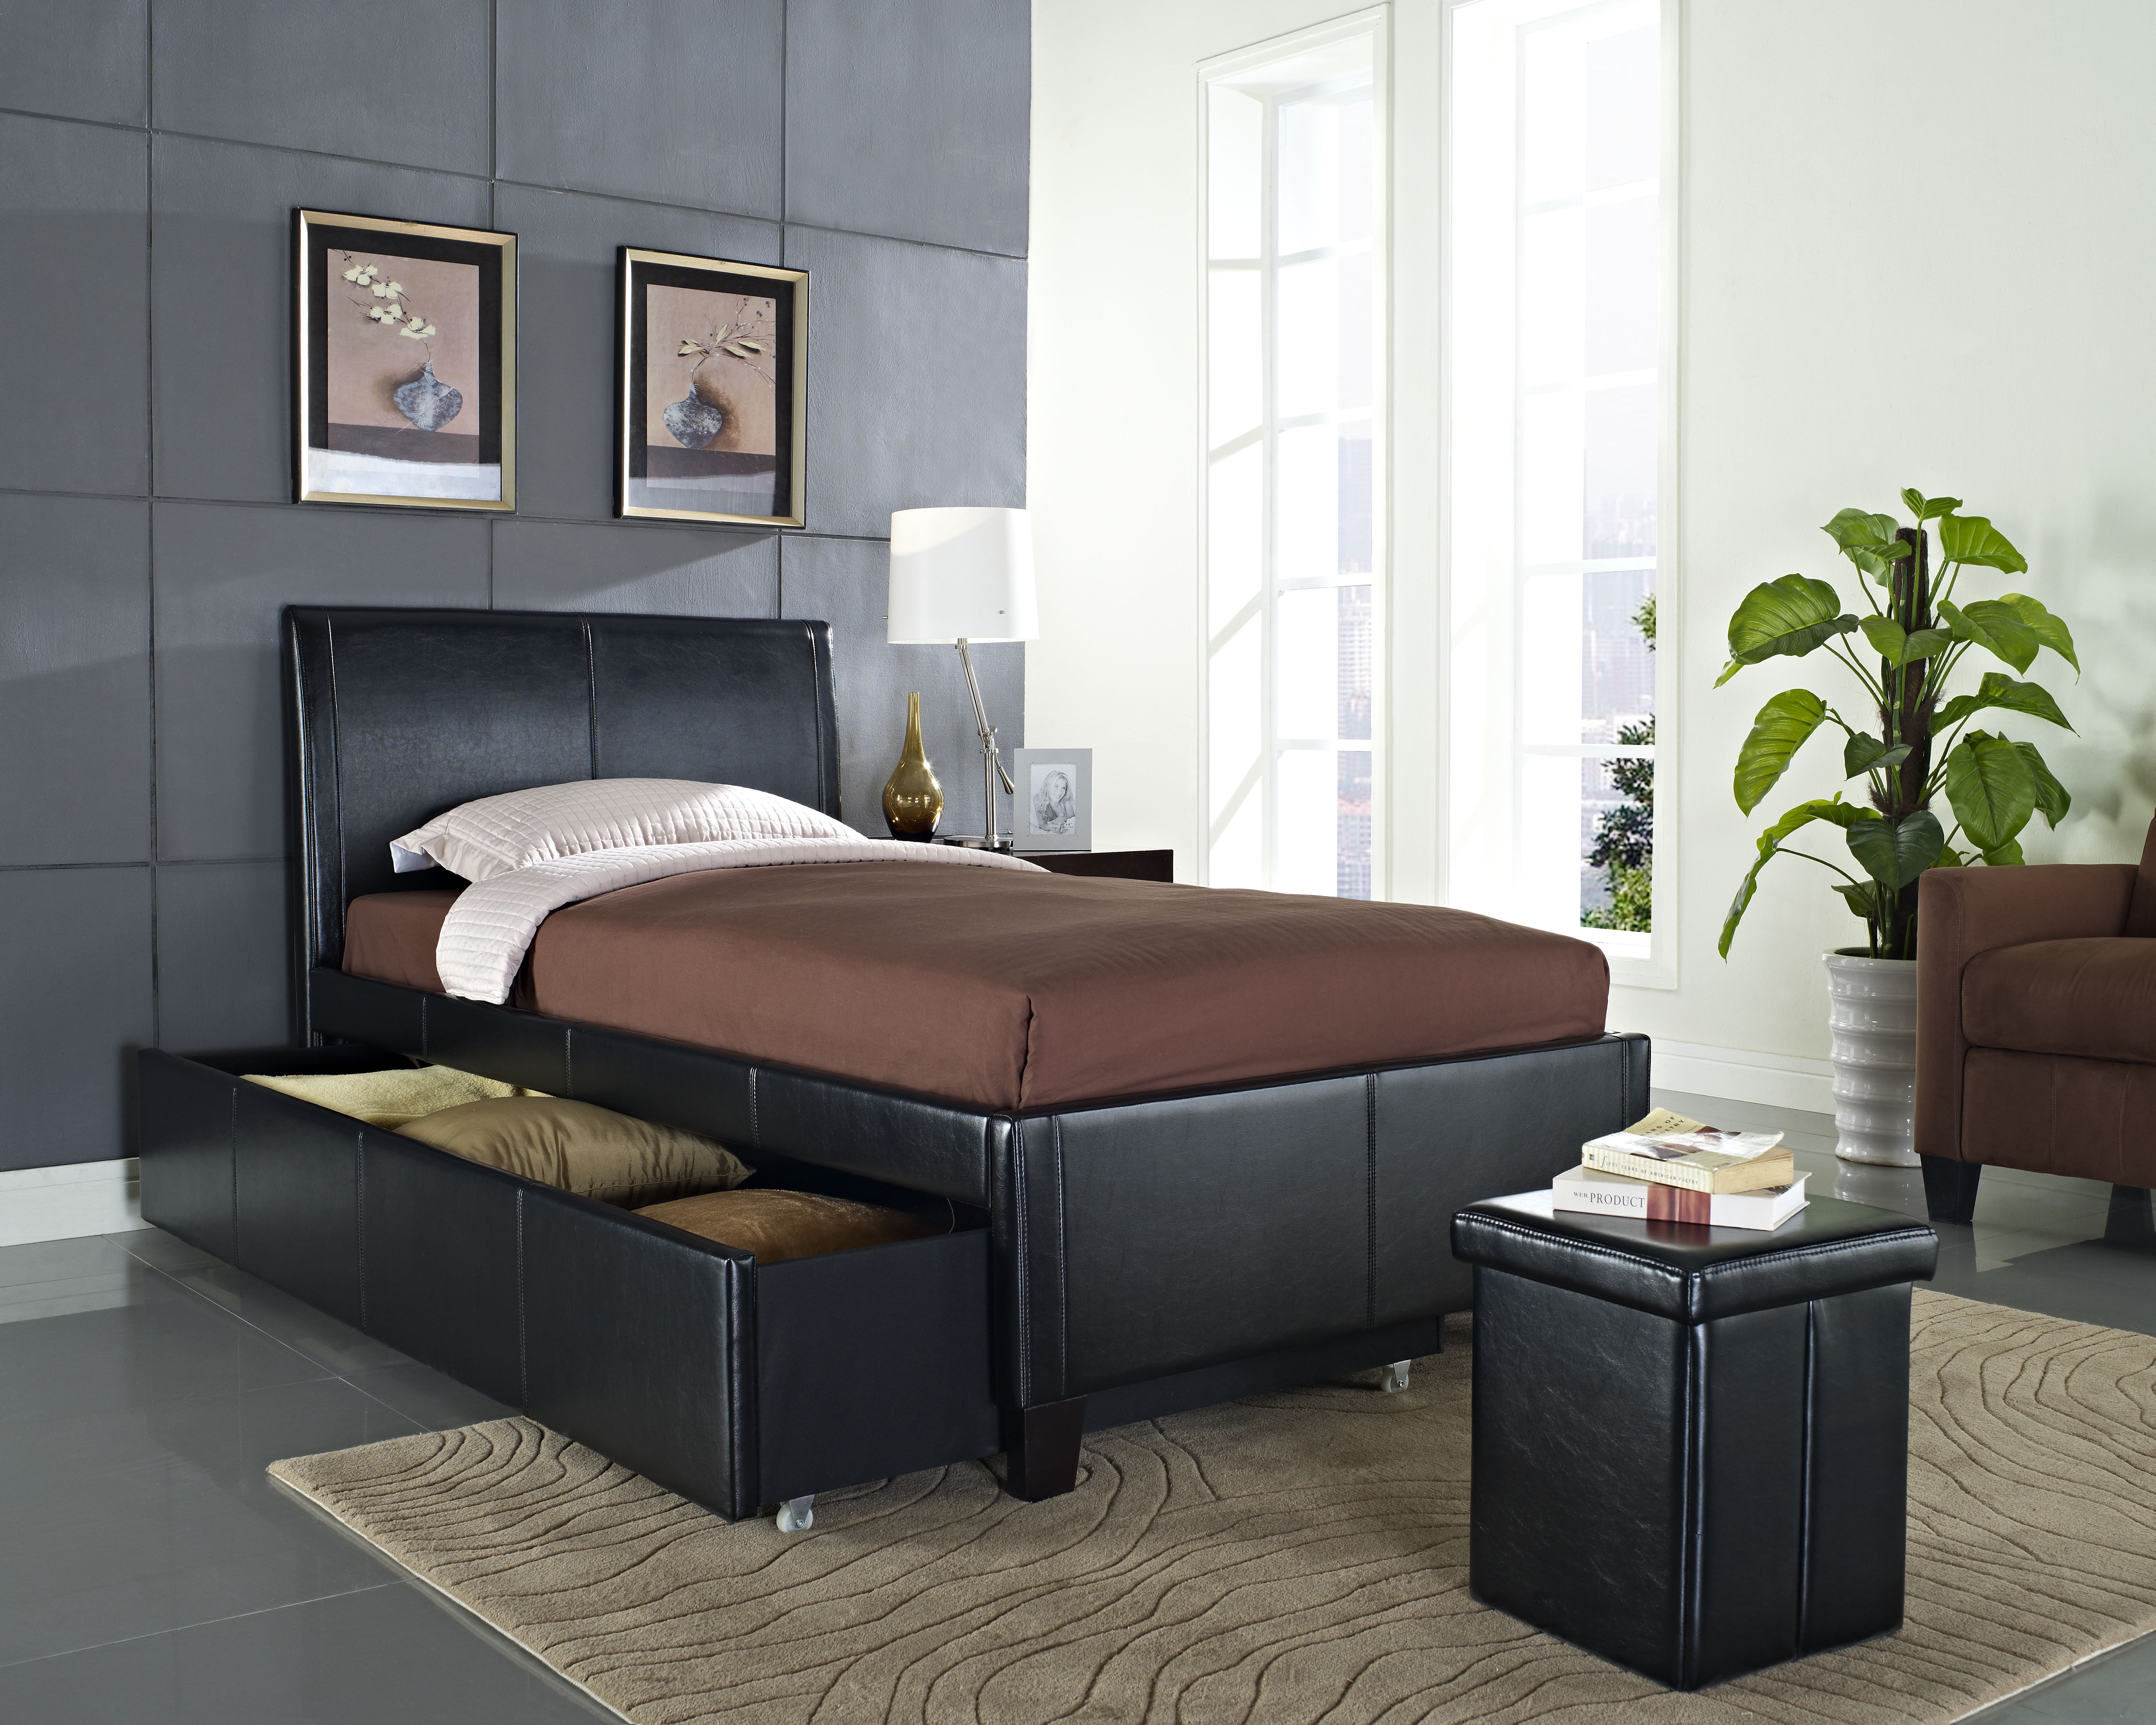 Standard Furniture New York Black Twin Upholster Trundle Bed | The